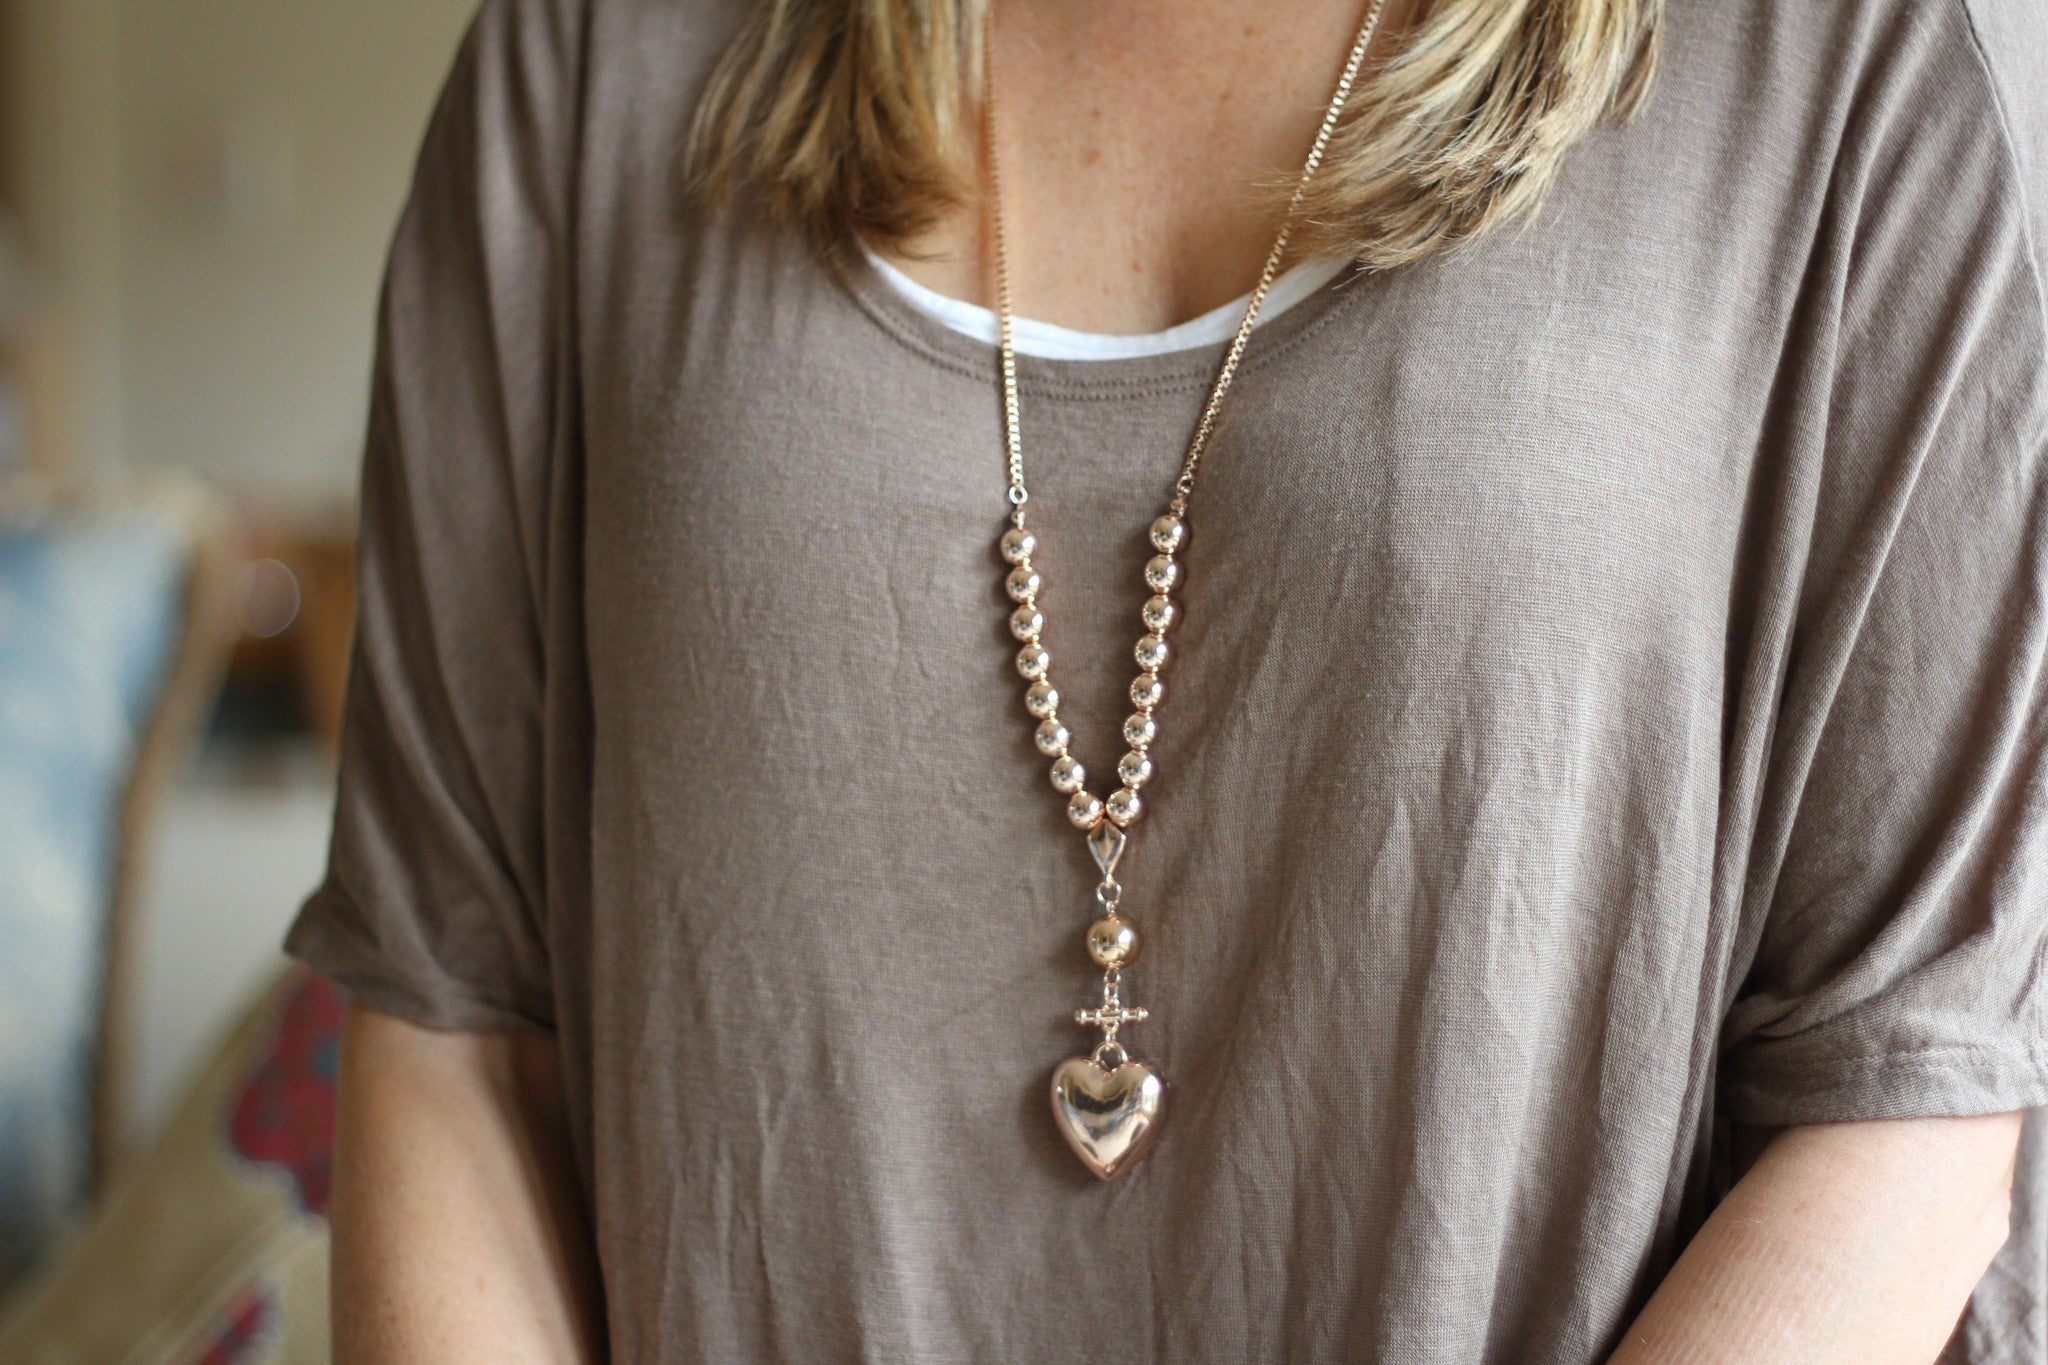 Relaxation Necklace - Rose Gold Box Chain